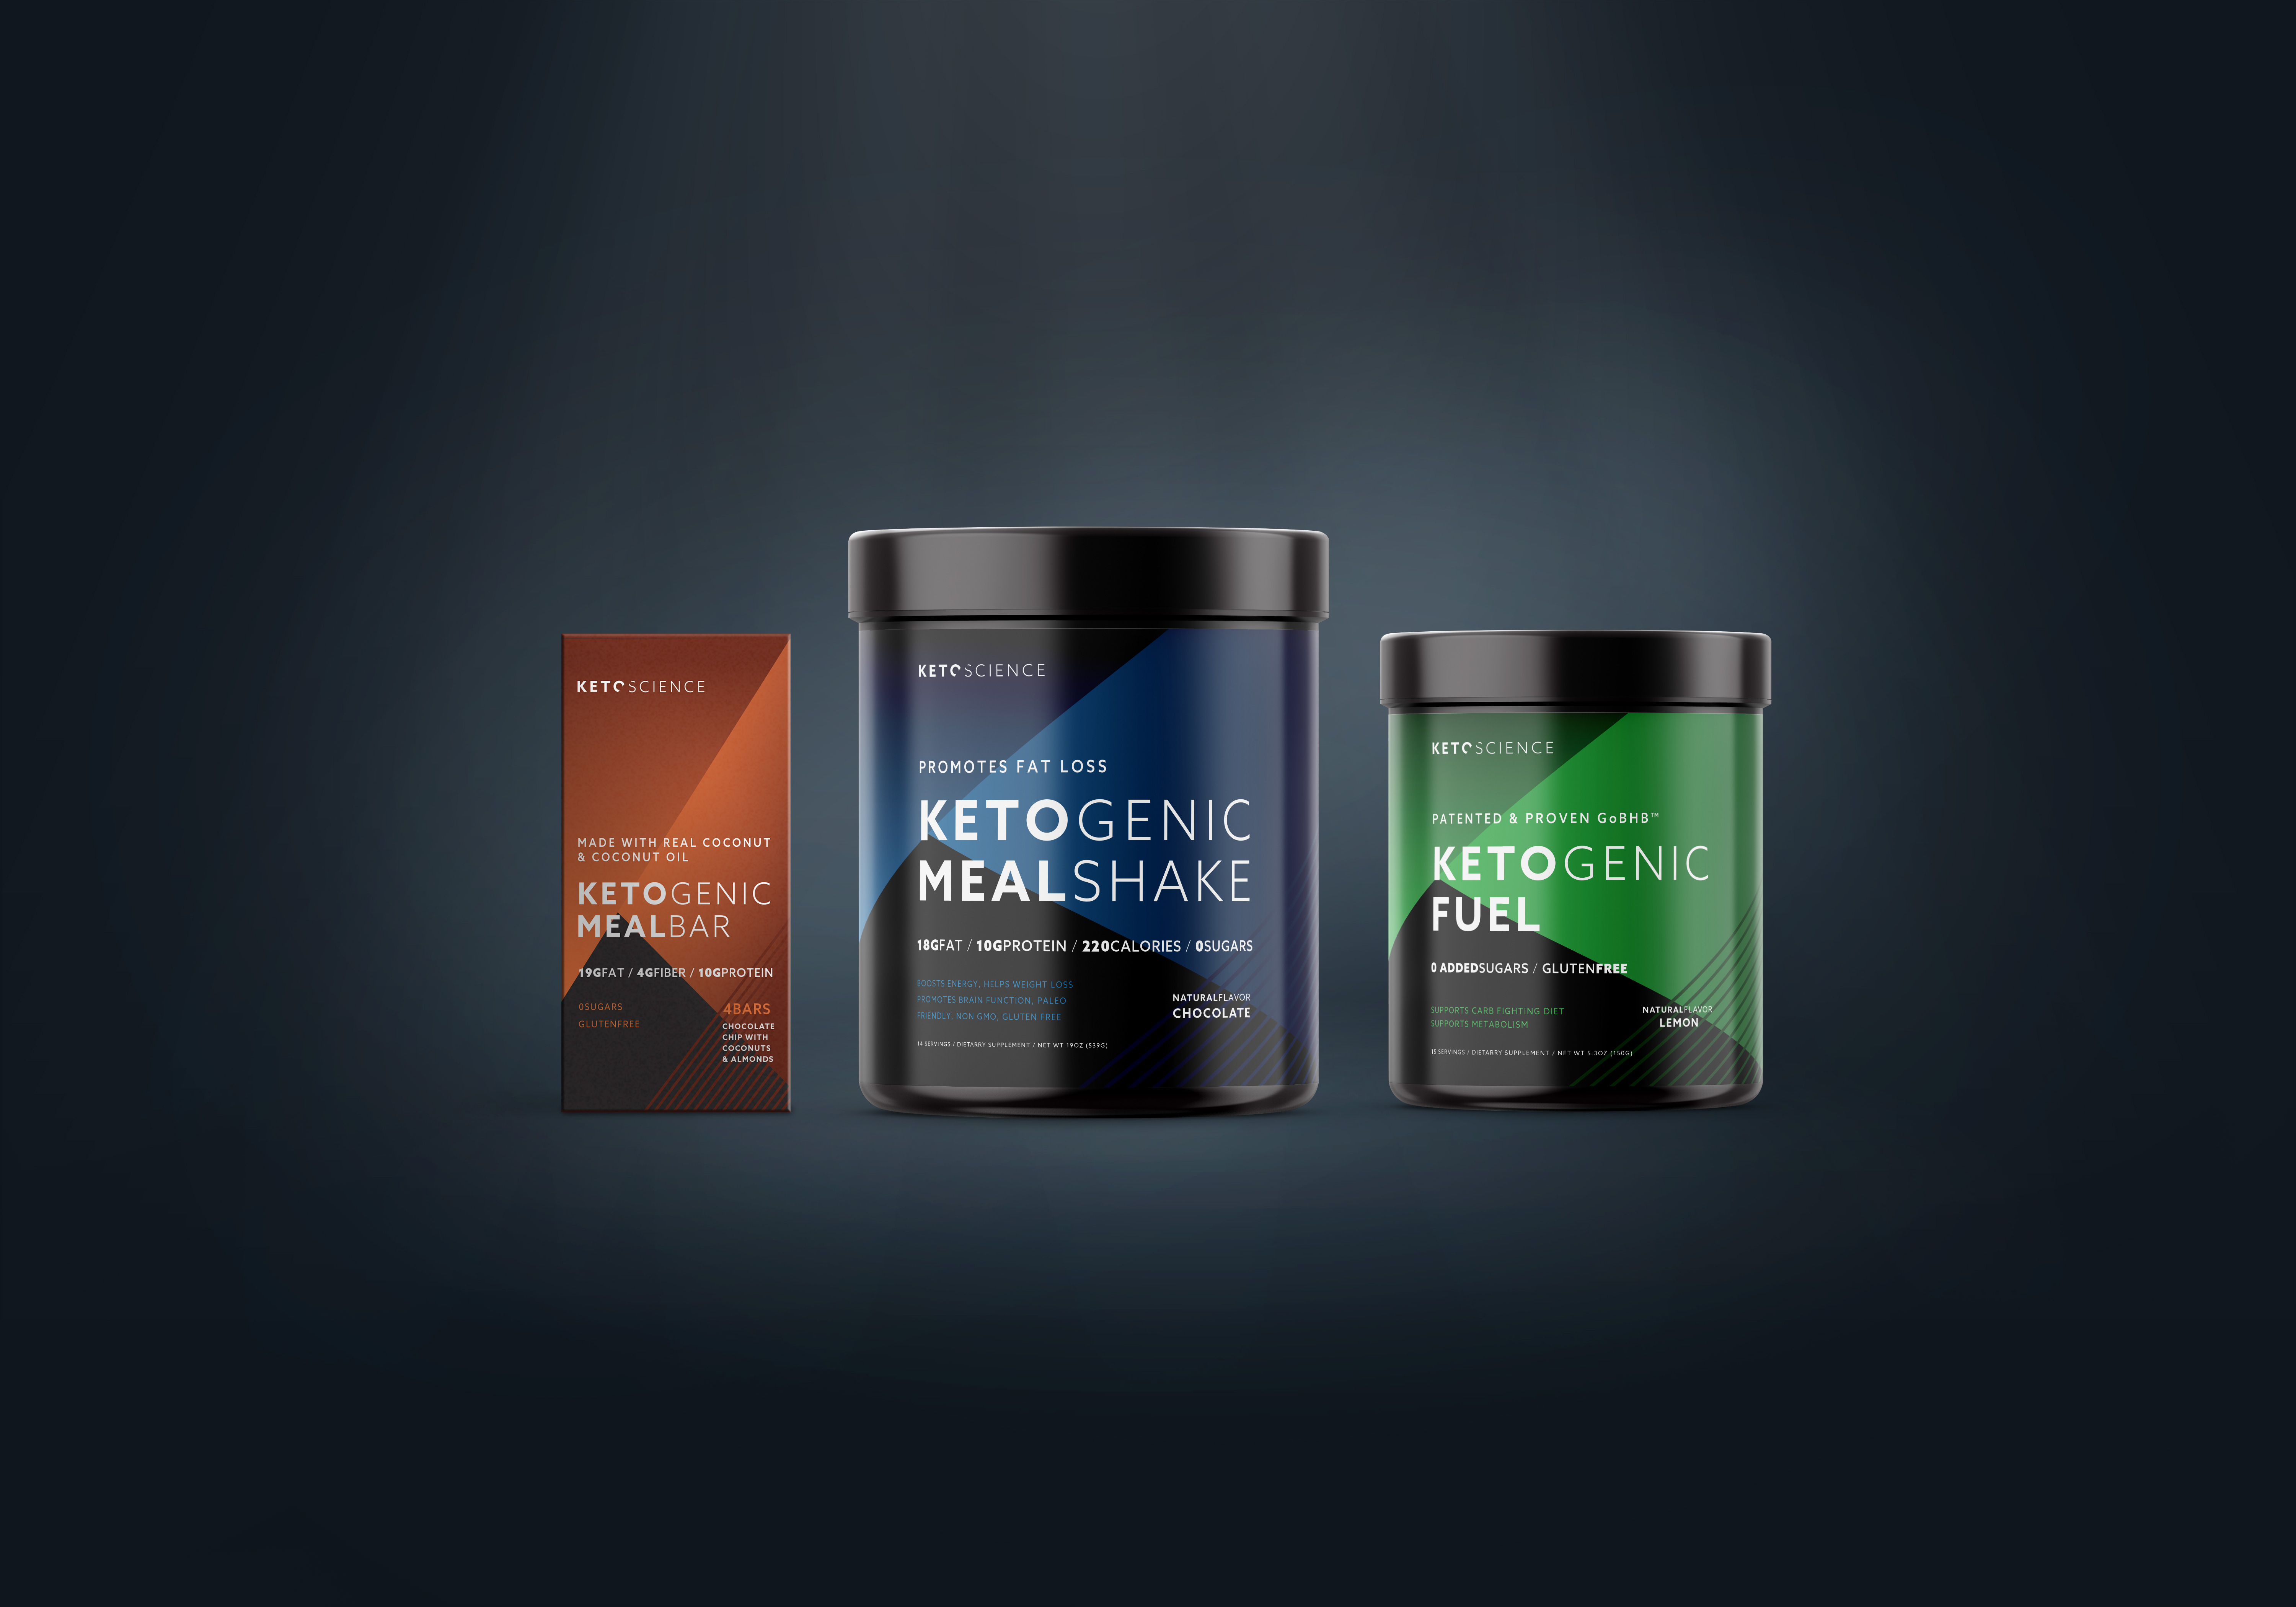 Keto Science packaging design concept for a ketogenic product line incorporating geometric shapes, lines and vibrant colors.